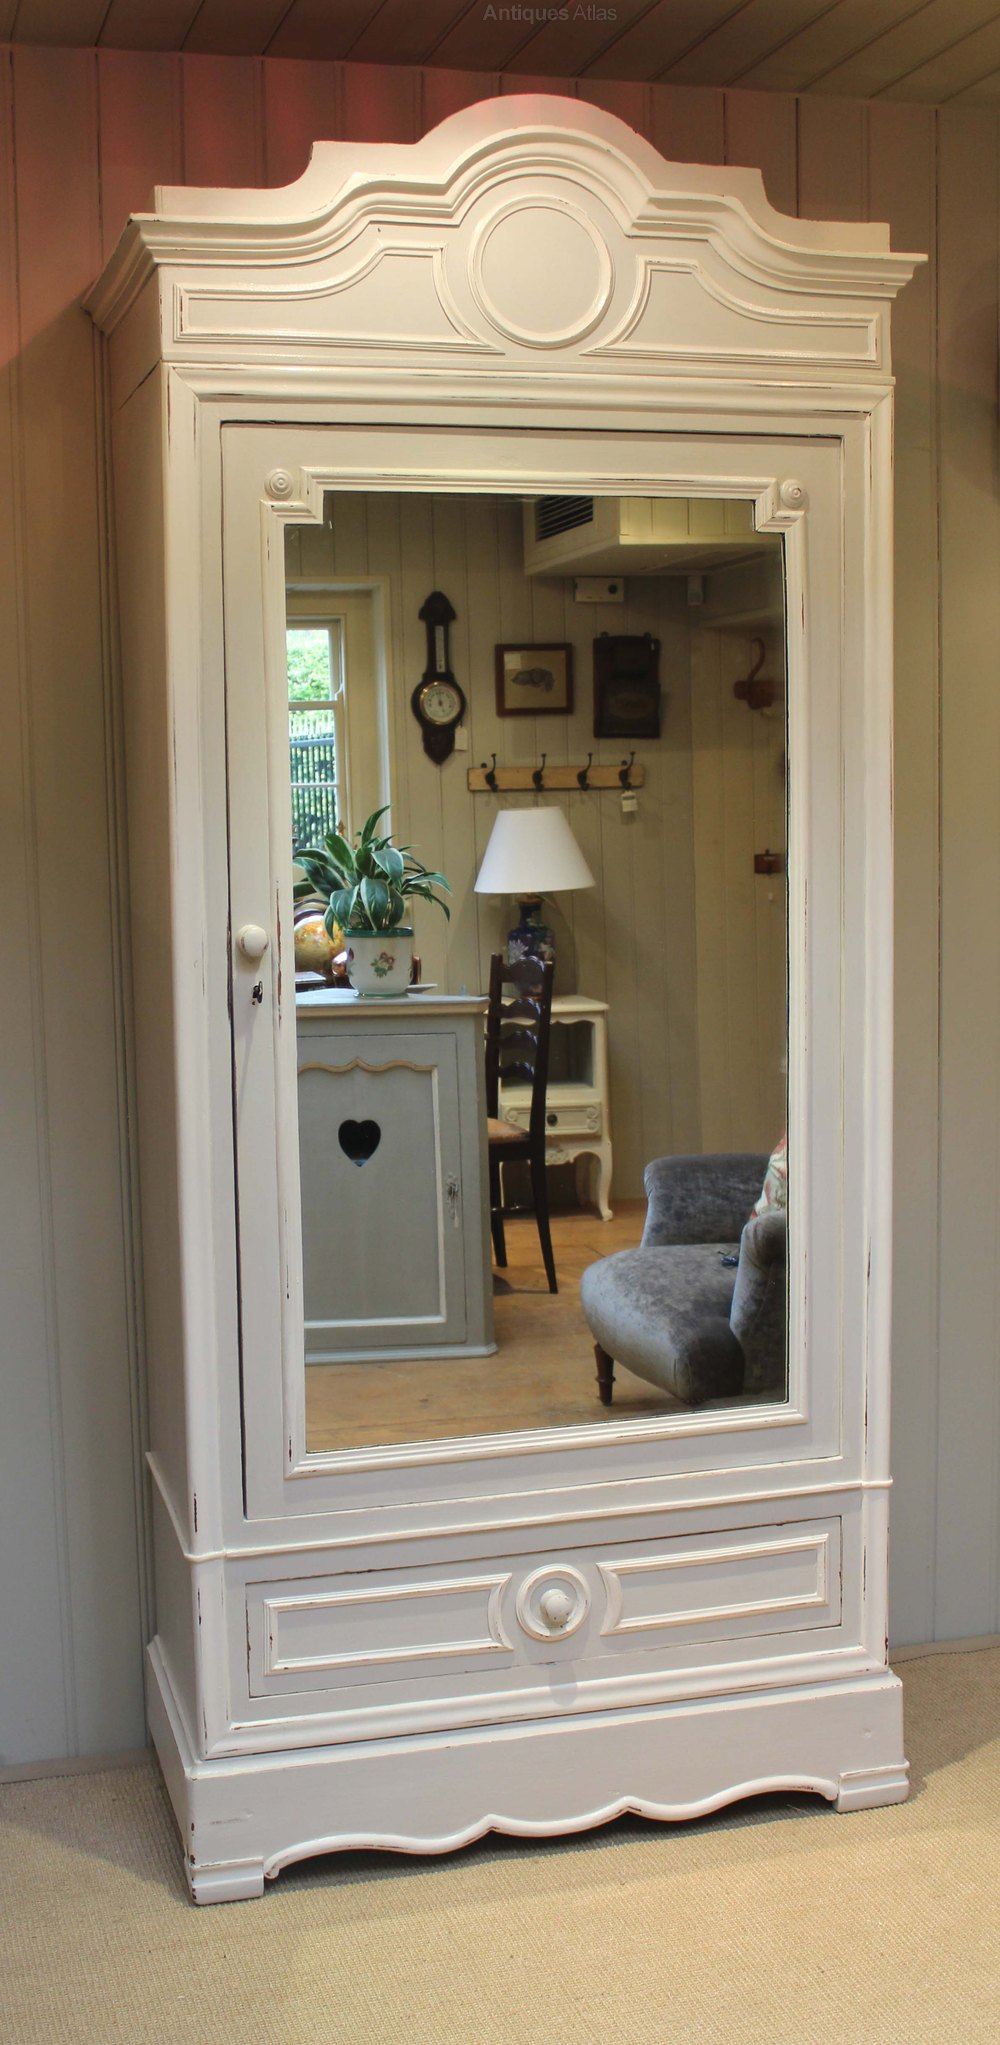 Painted Single Mirrored Door Armoire Antique Armoires